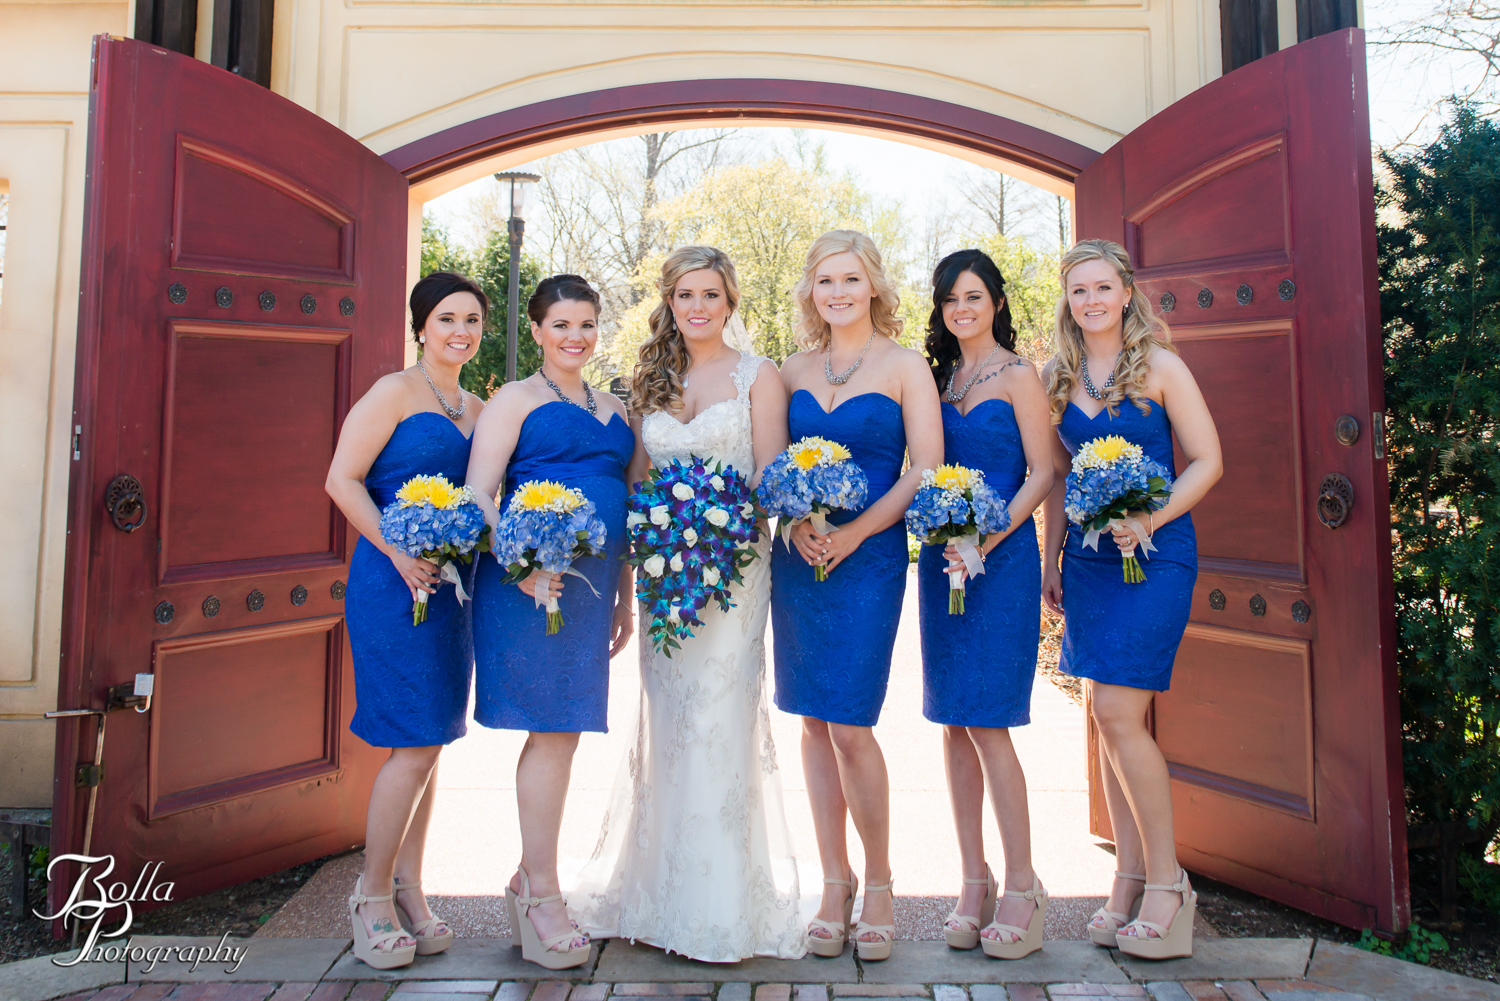 Bolla_Photography_St_Louis_wedding_photographer_Morgando_Blues_hockey_Botanical_Gardens_spring-0079.jpg